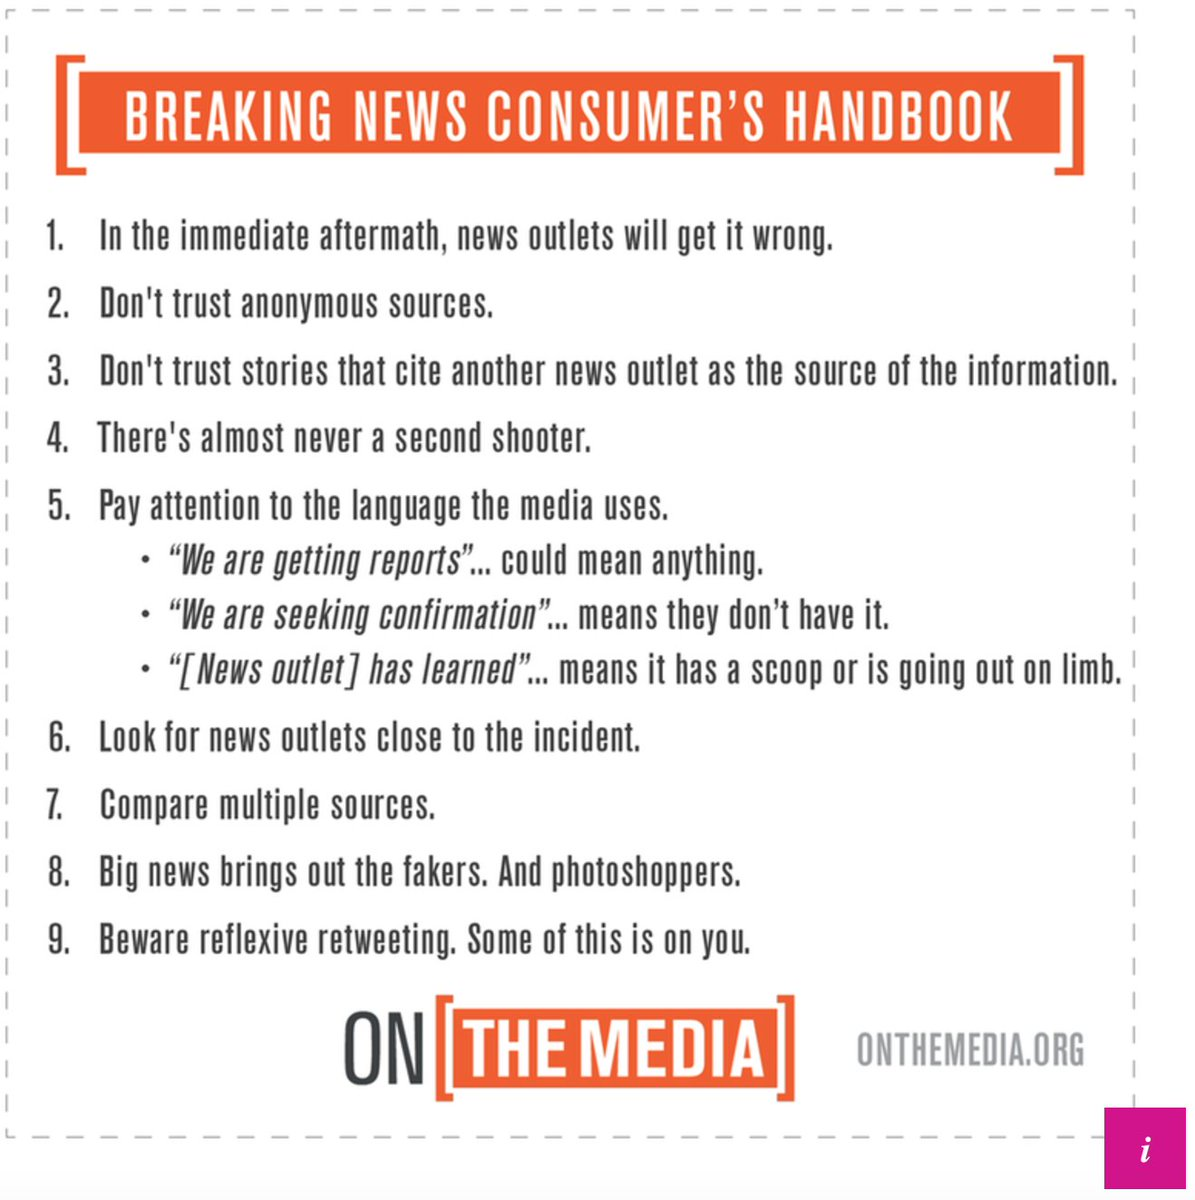 These tips are always useful to keep in mind. But boy, the reports out of Las Vegas are very concerning.